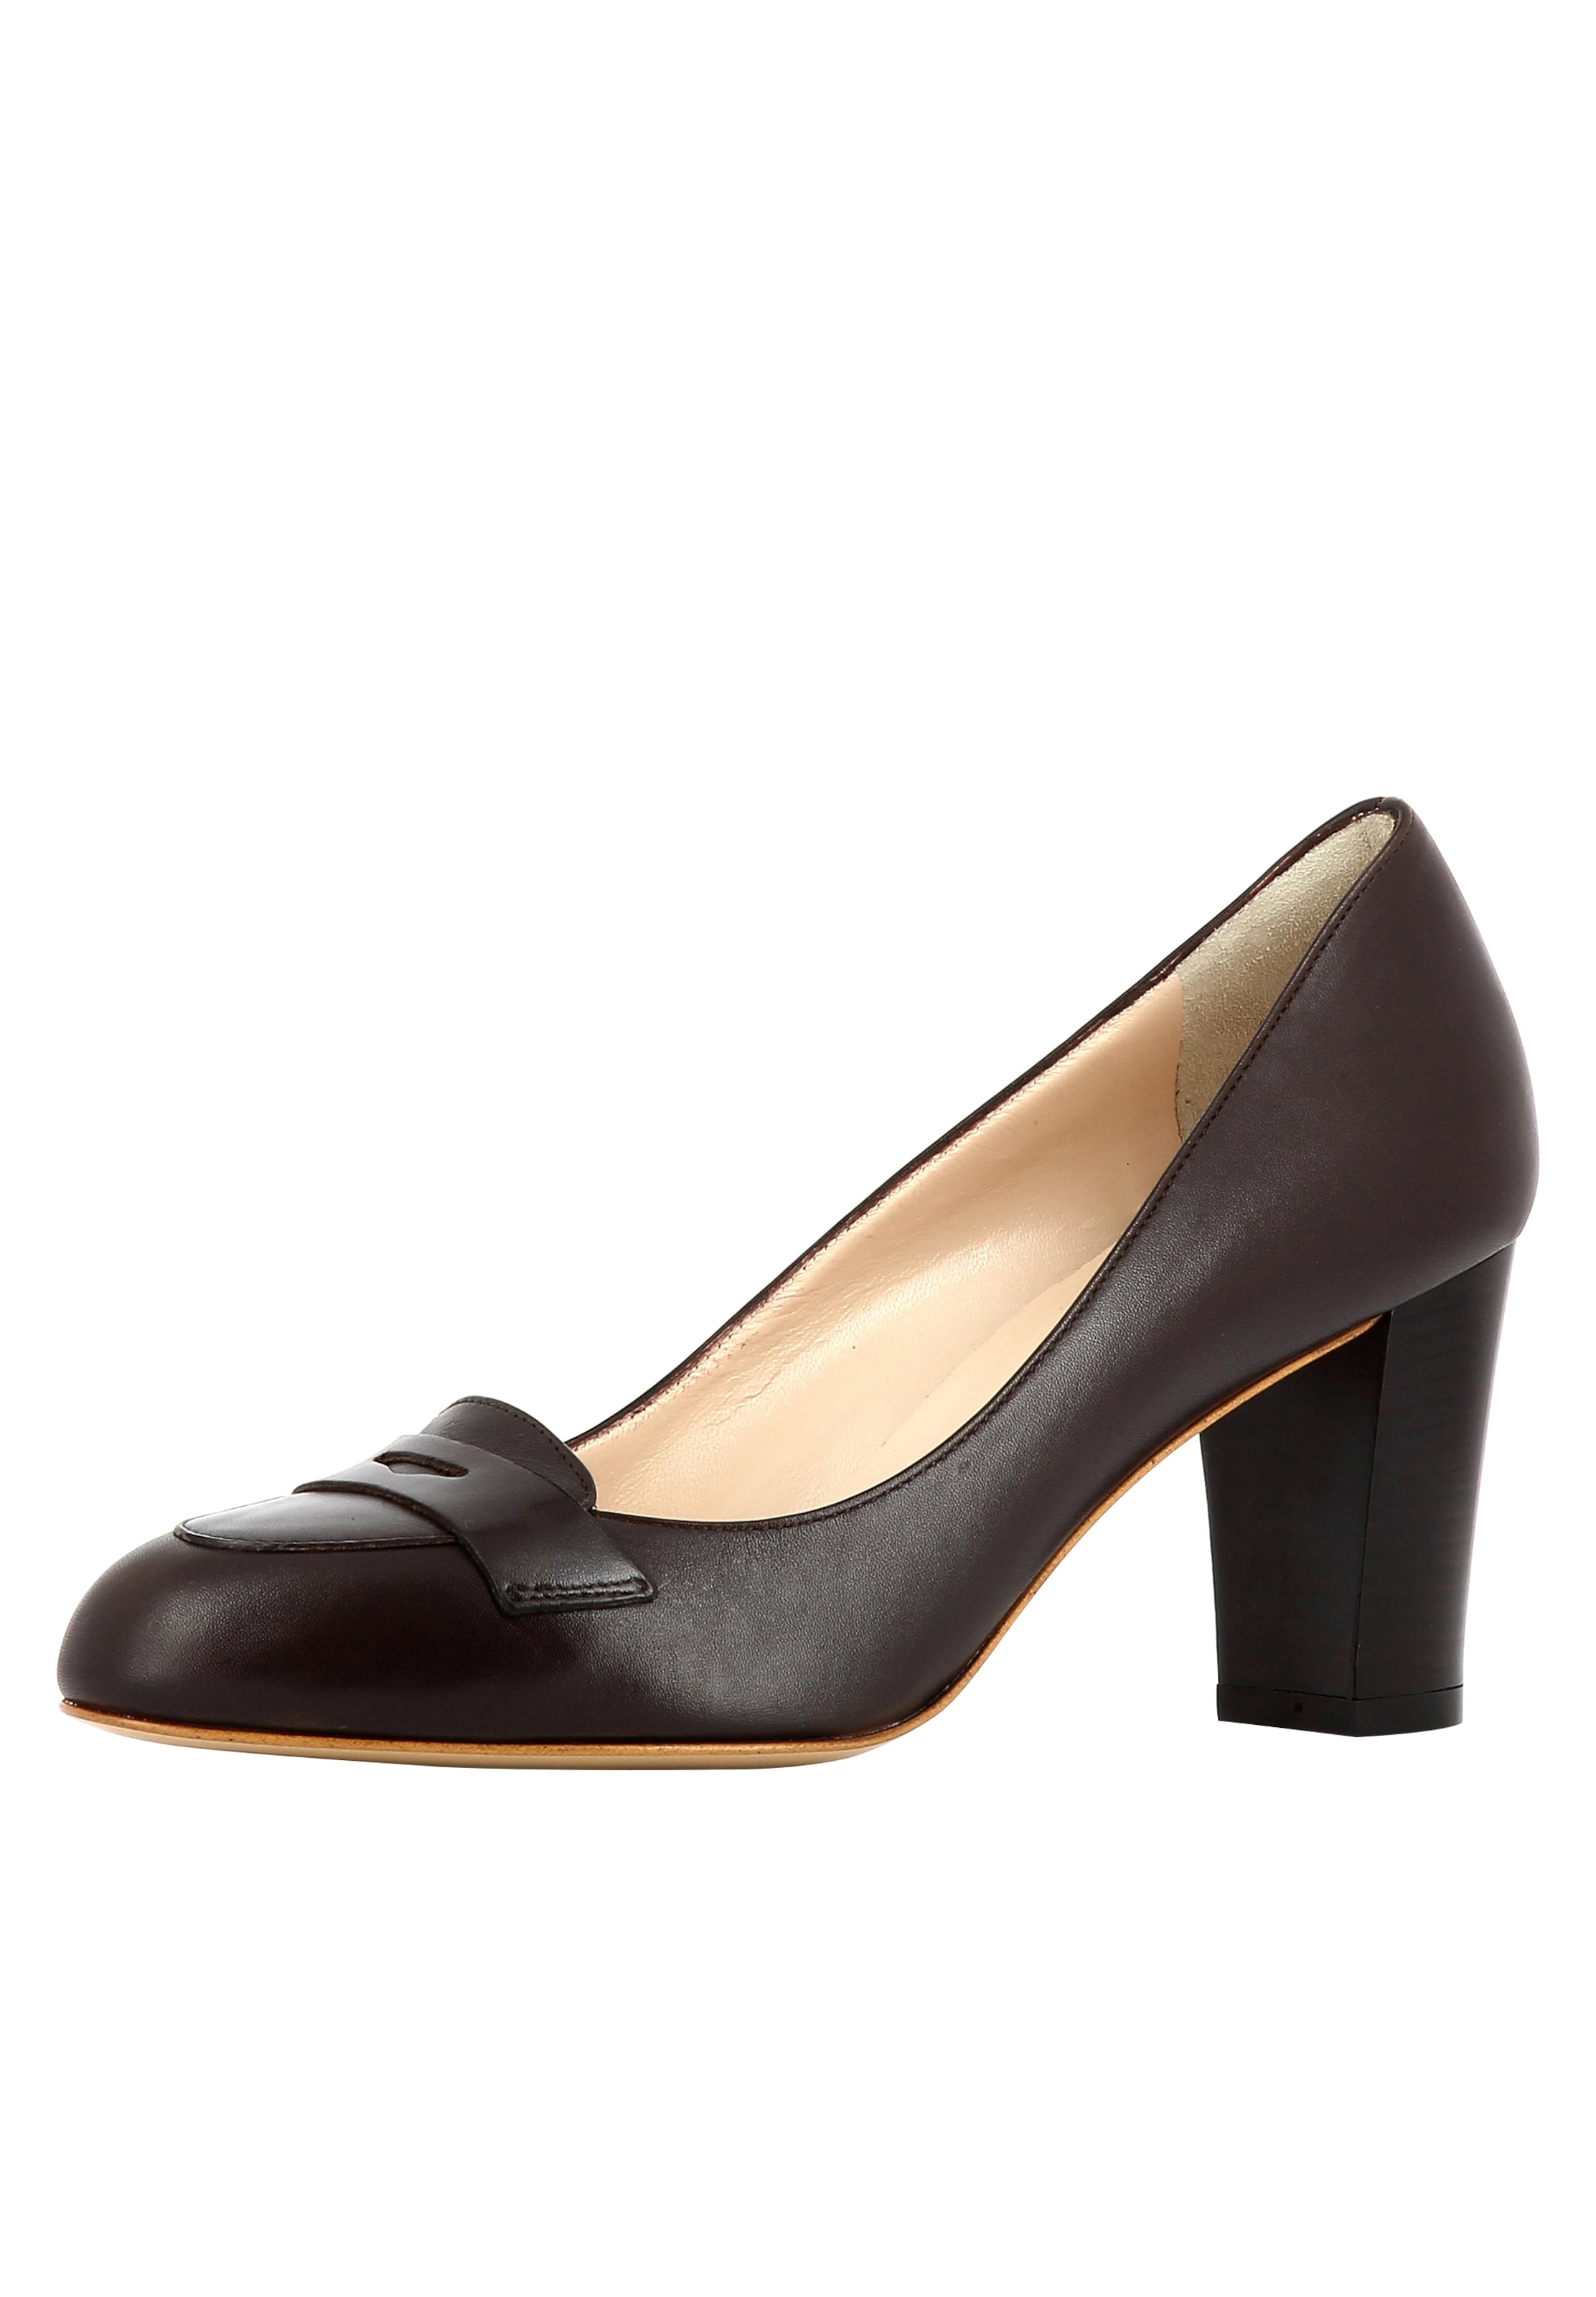 Evita Pumps Braun Evita In Pumps kn80wOPX